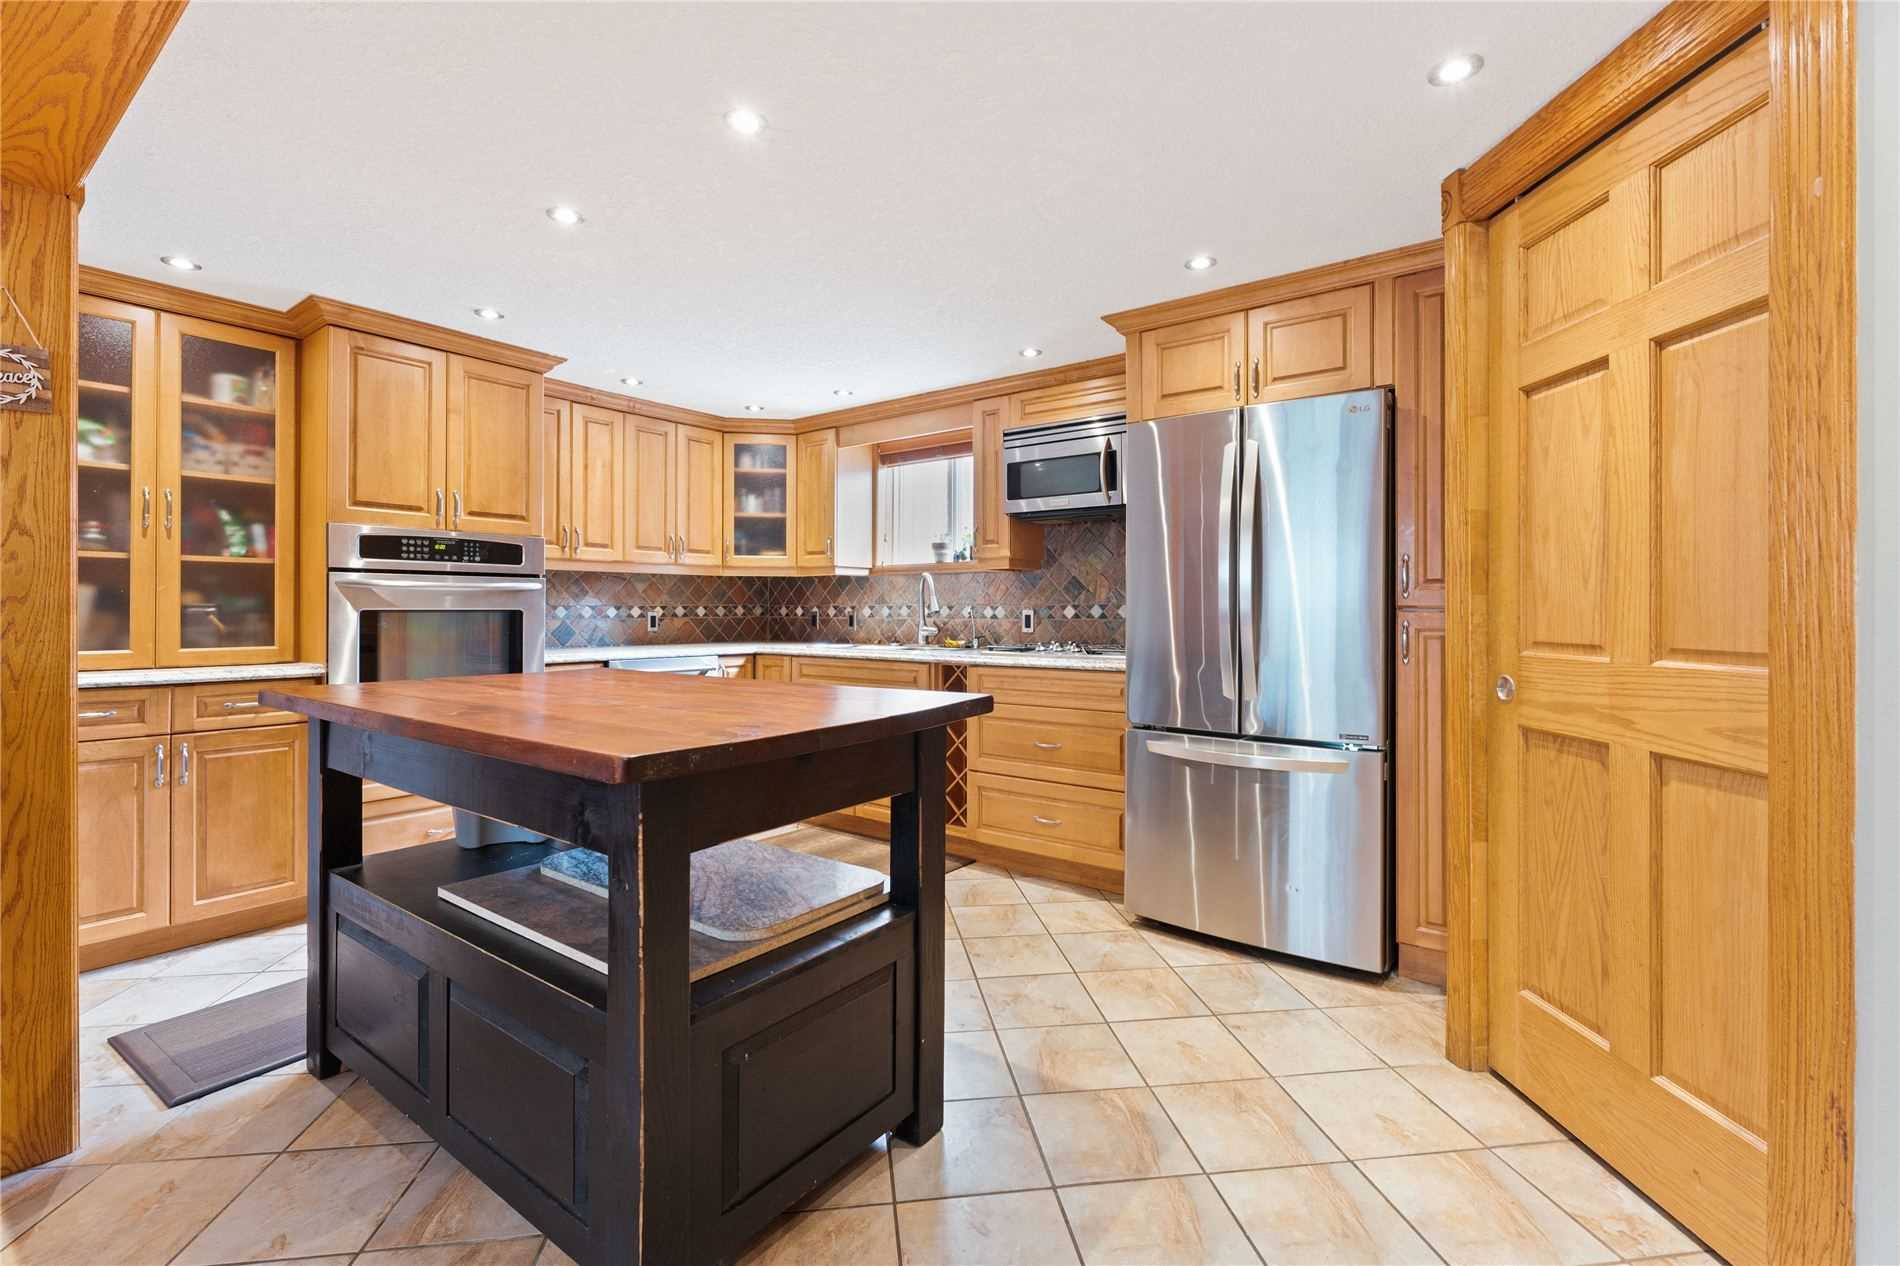 207 Christopher Dr, Cambridge, Ontario N1R 4S6, 3 Bedrooms Bedrooms, 12 Rooms Rooms,2 BathroomsBathrooms,Detached,For Sale,Christopher,X5354161